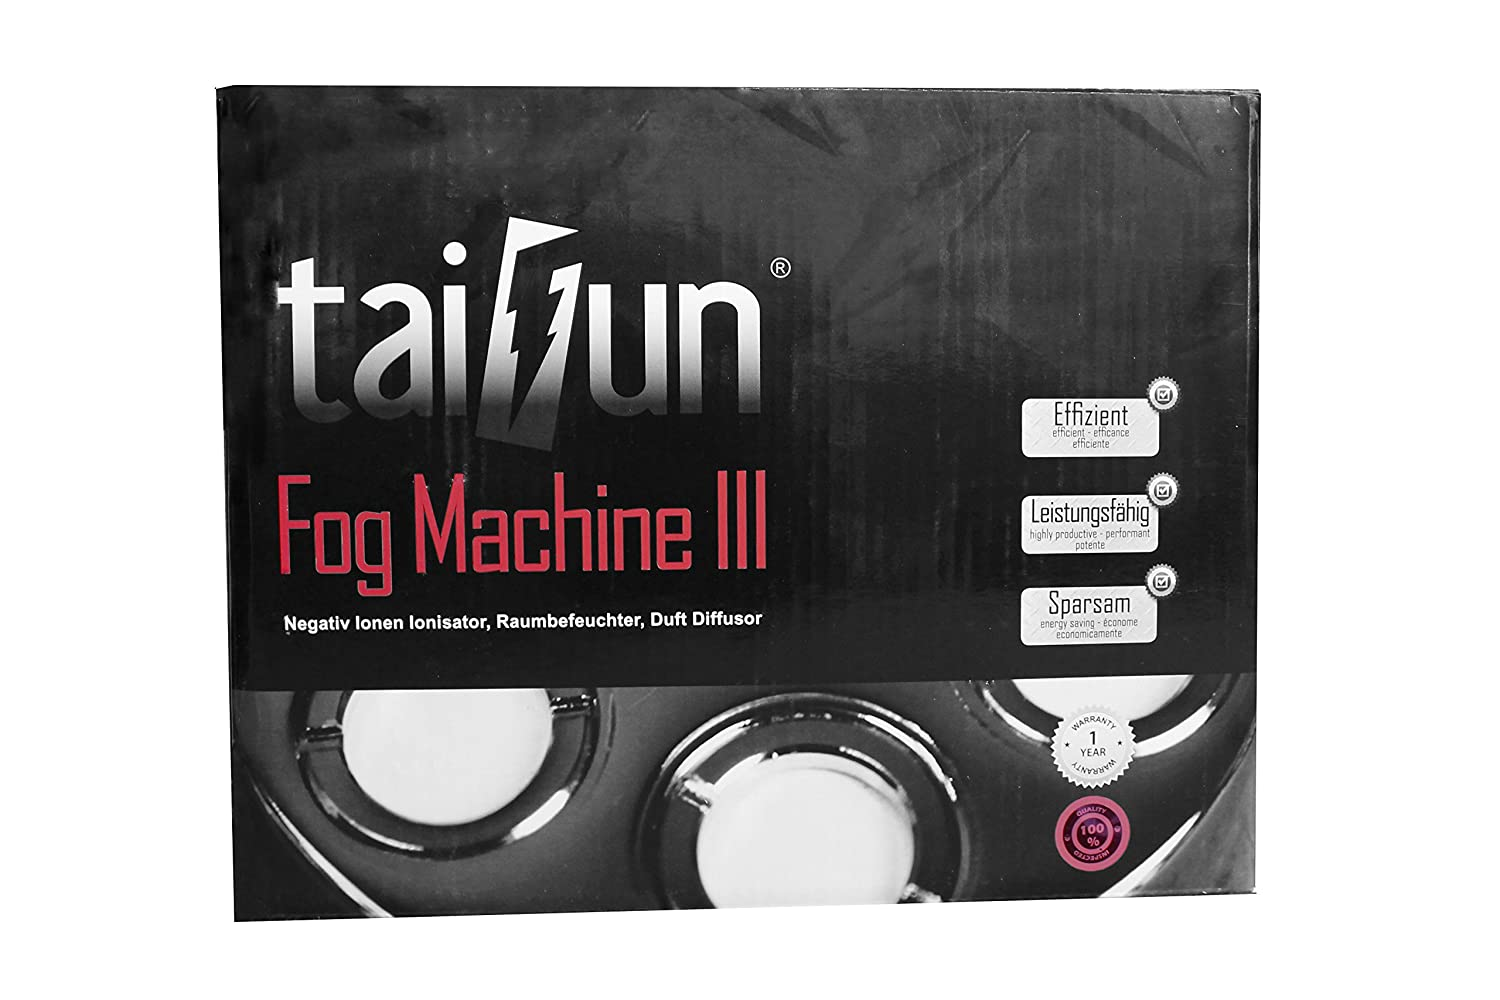 Taifun Nebler Fog Machine III 1200 ml/h inkl. Greenception Dünger 100g